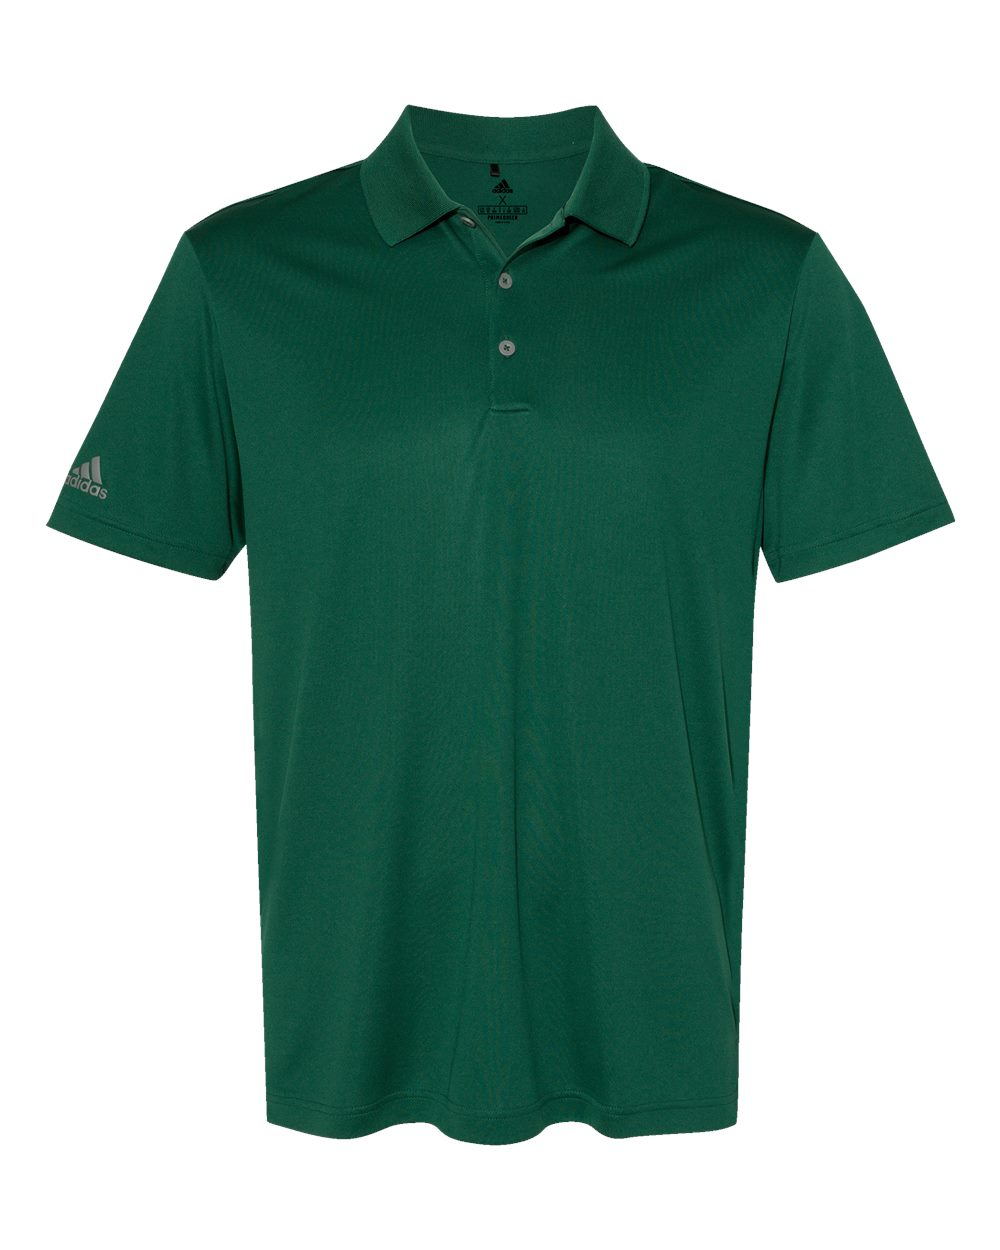 Adidas-Performance-Sport-Shirt-Polo-Button-A230-up-to-4XL miniature 11